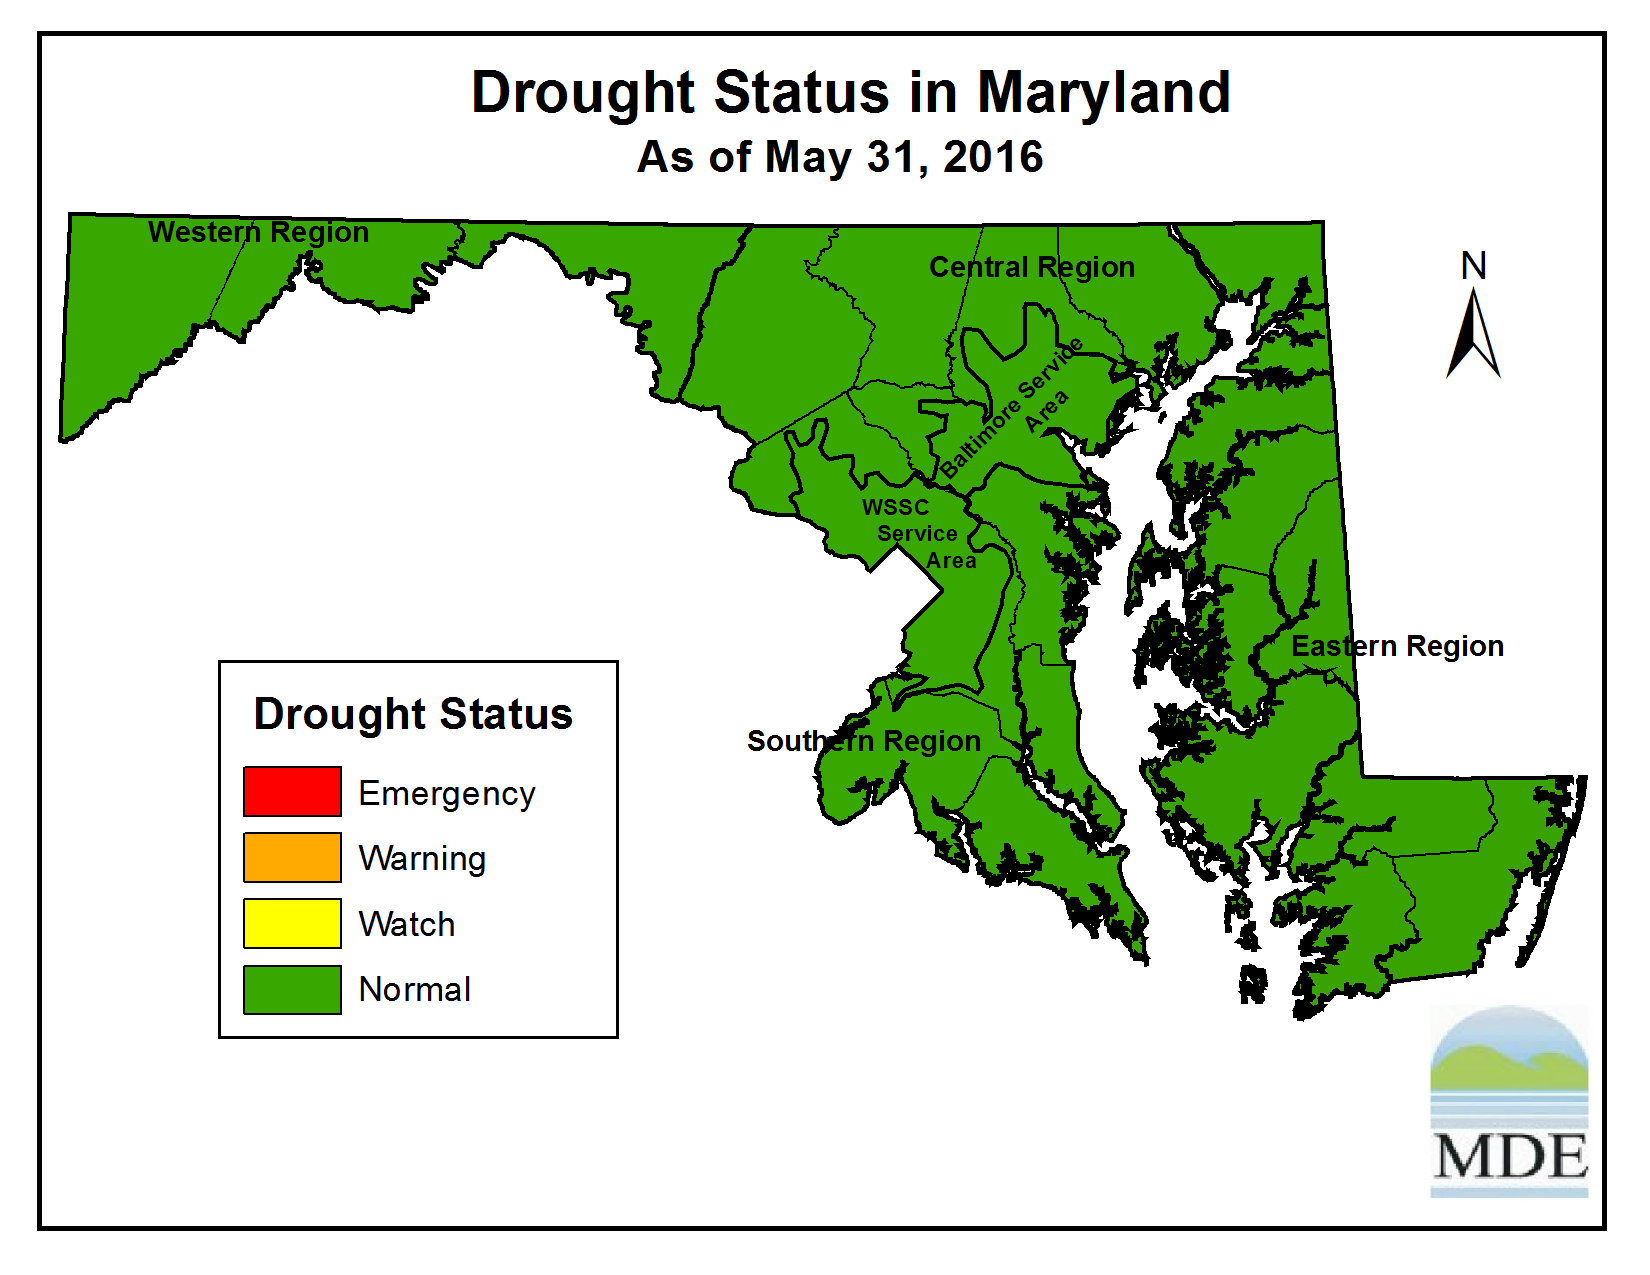 Drought Status as of May 31, 2016